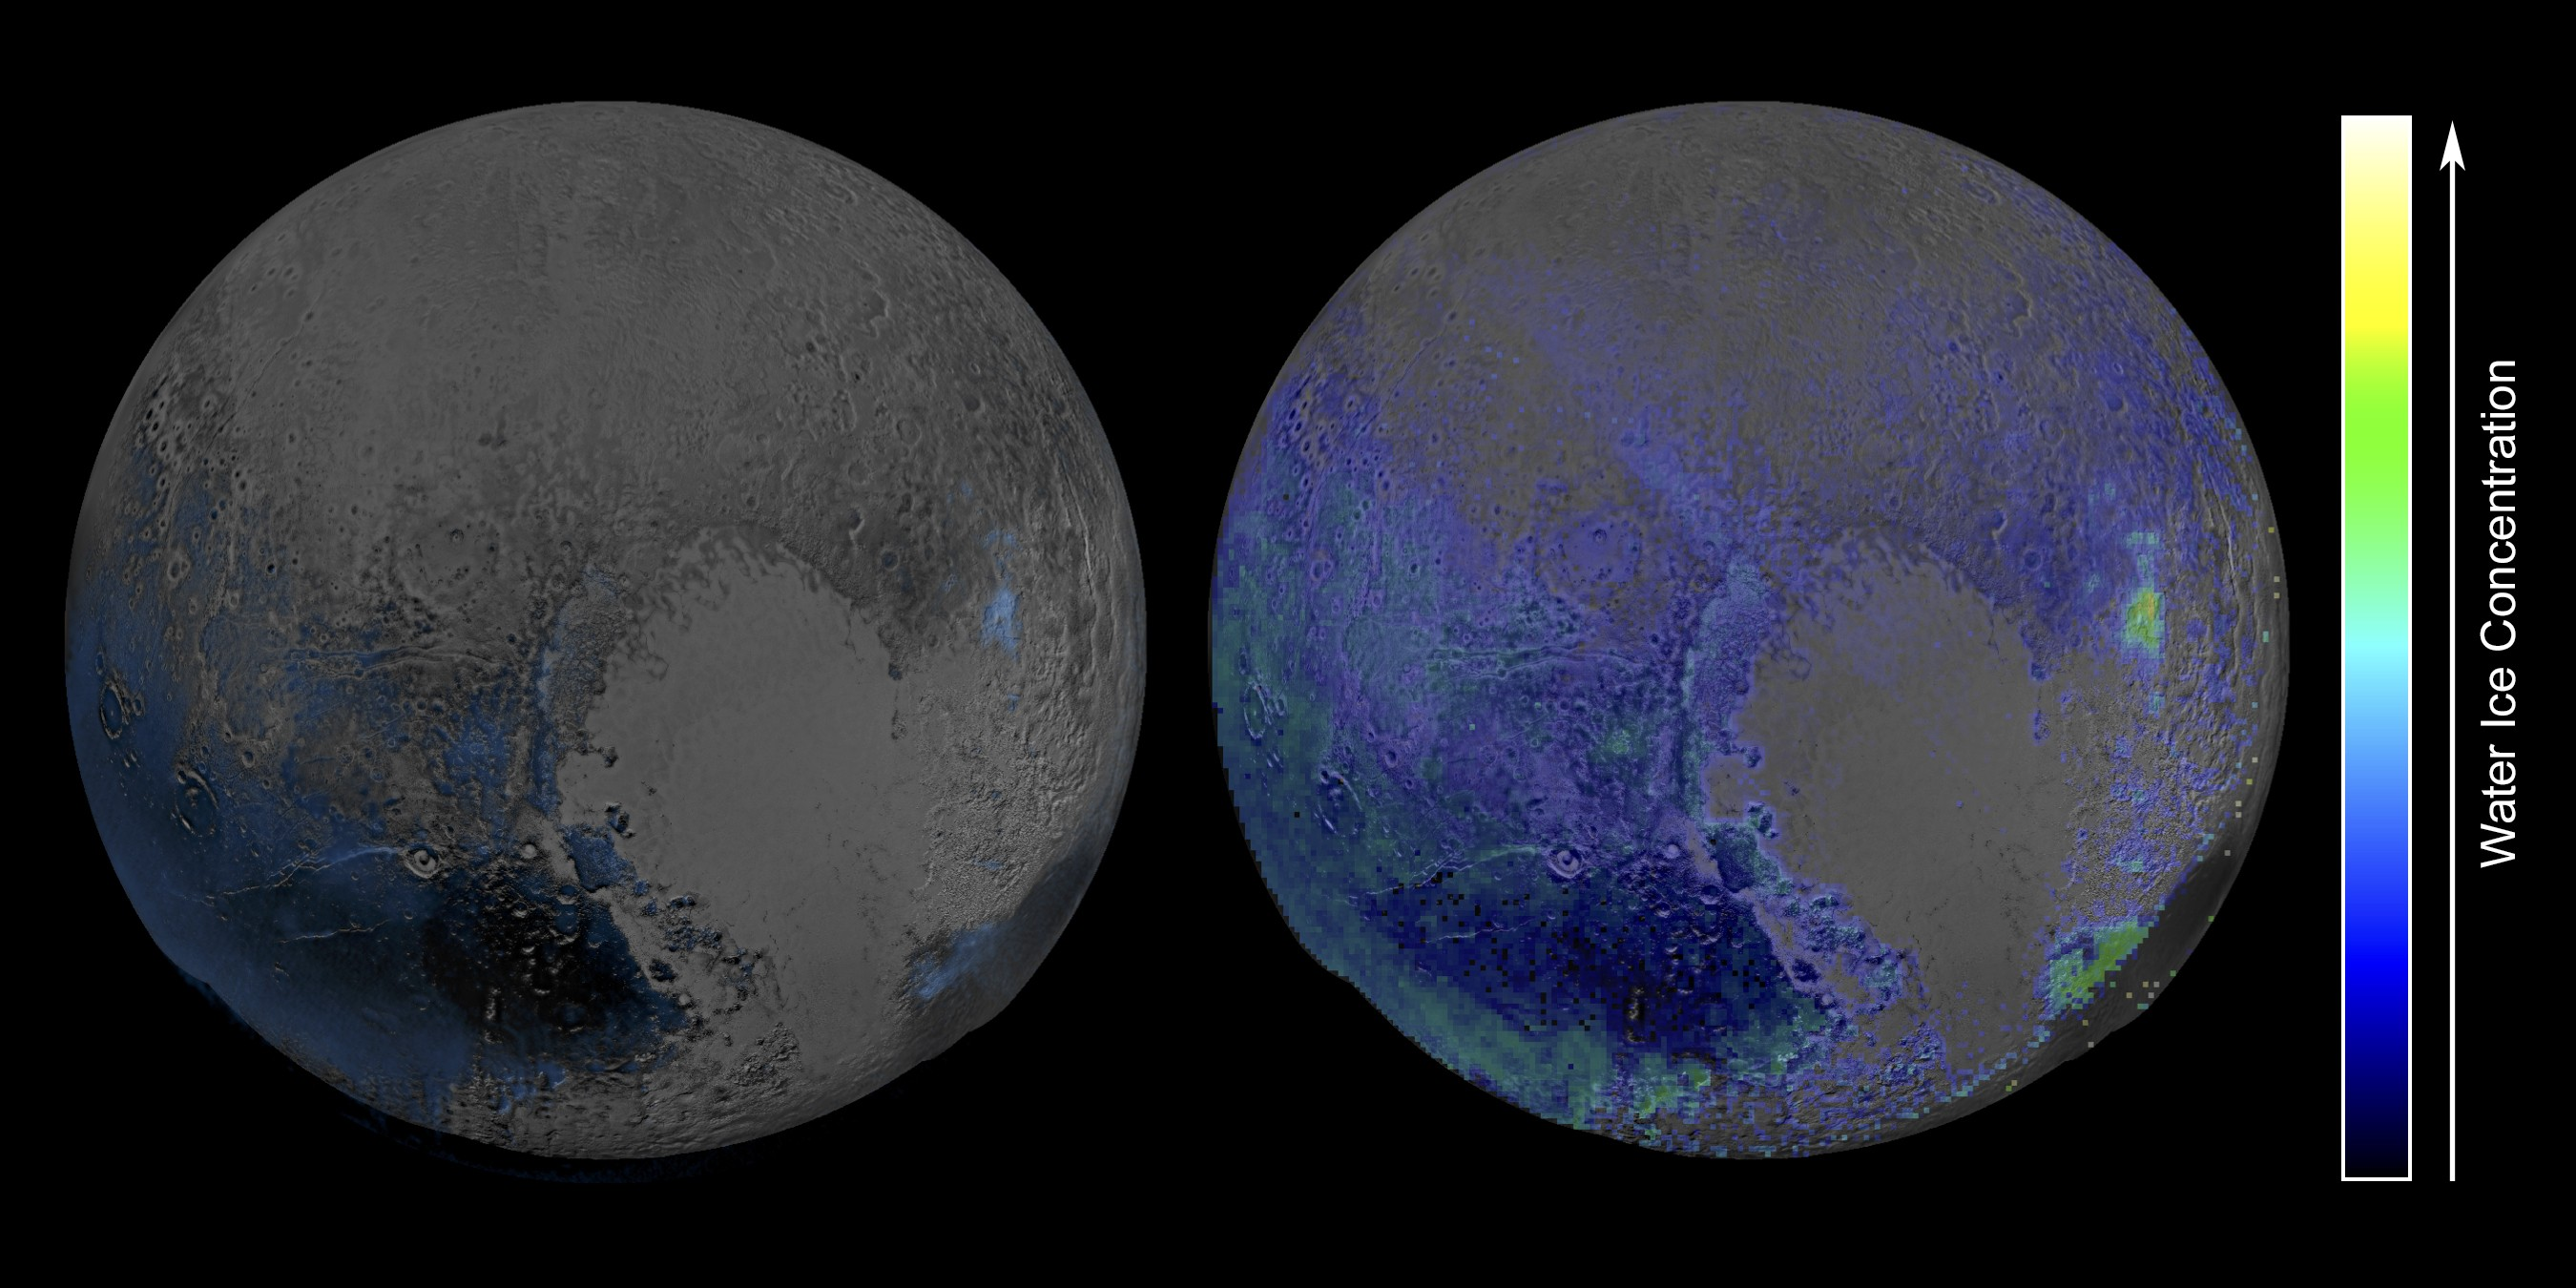 Pluto has Much More Water Ice than Previously Thought